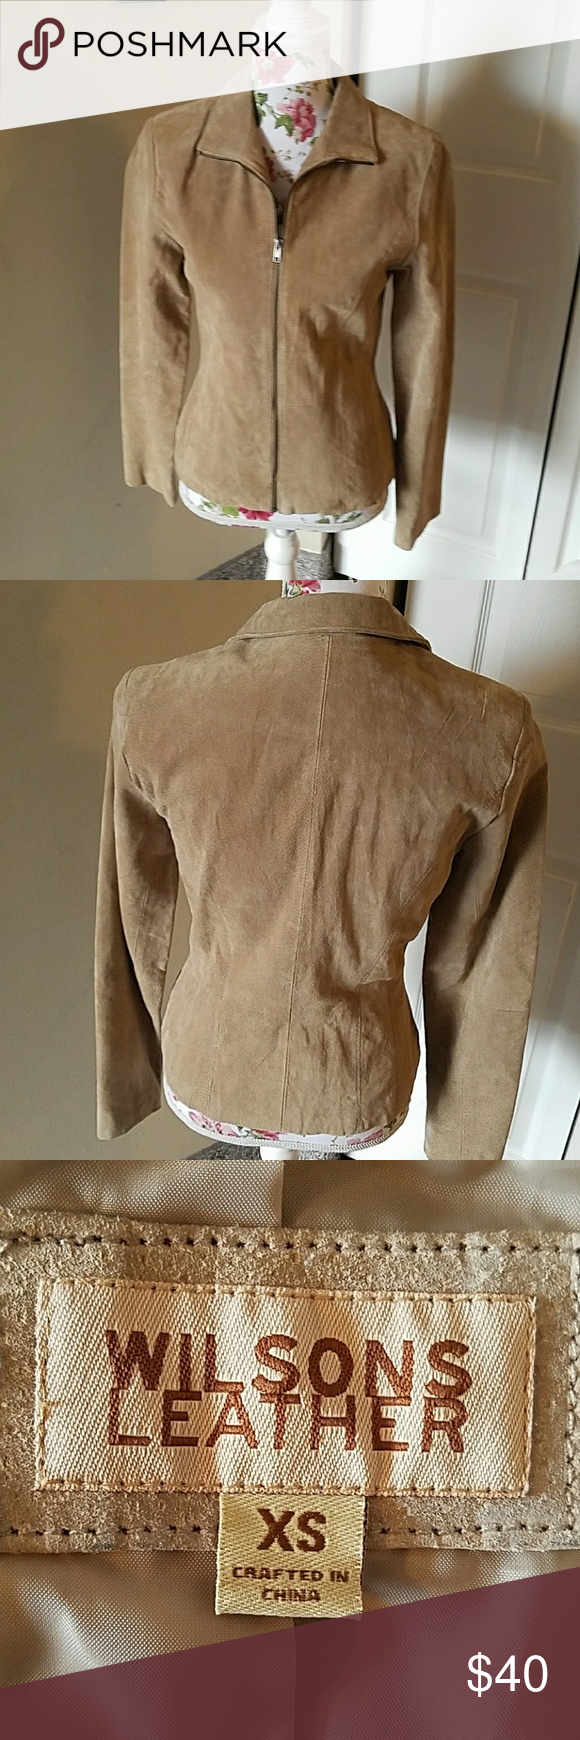 Wilson leather suede style jacket (With images) Suede